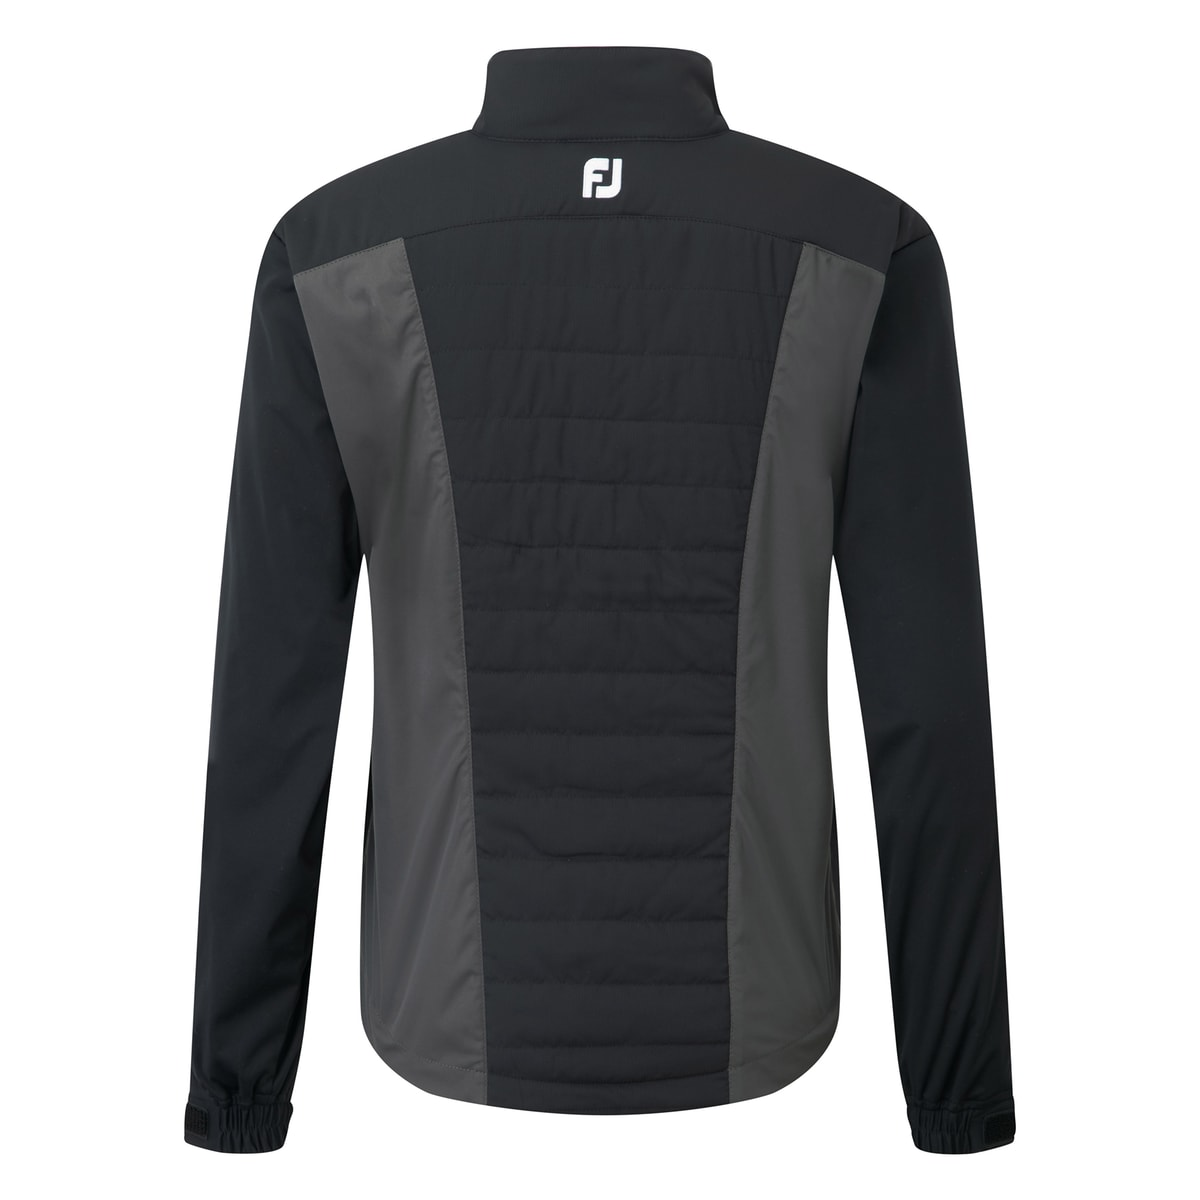 FJ Thermal Quilted Jacket Dam-Förra året Modell